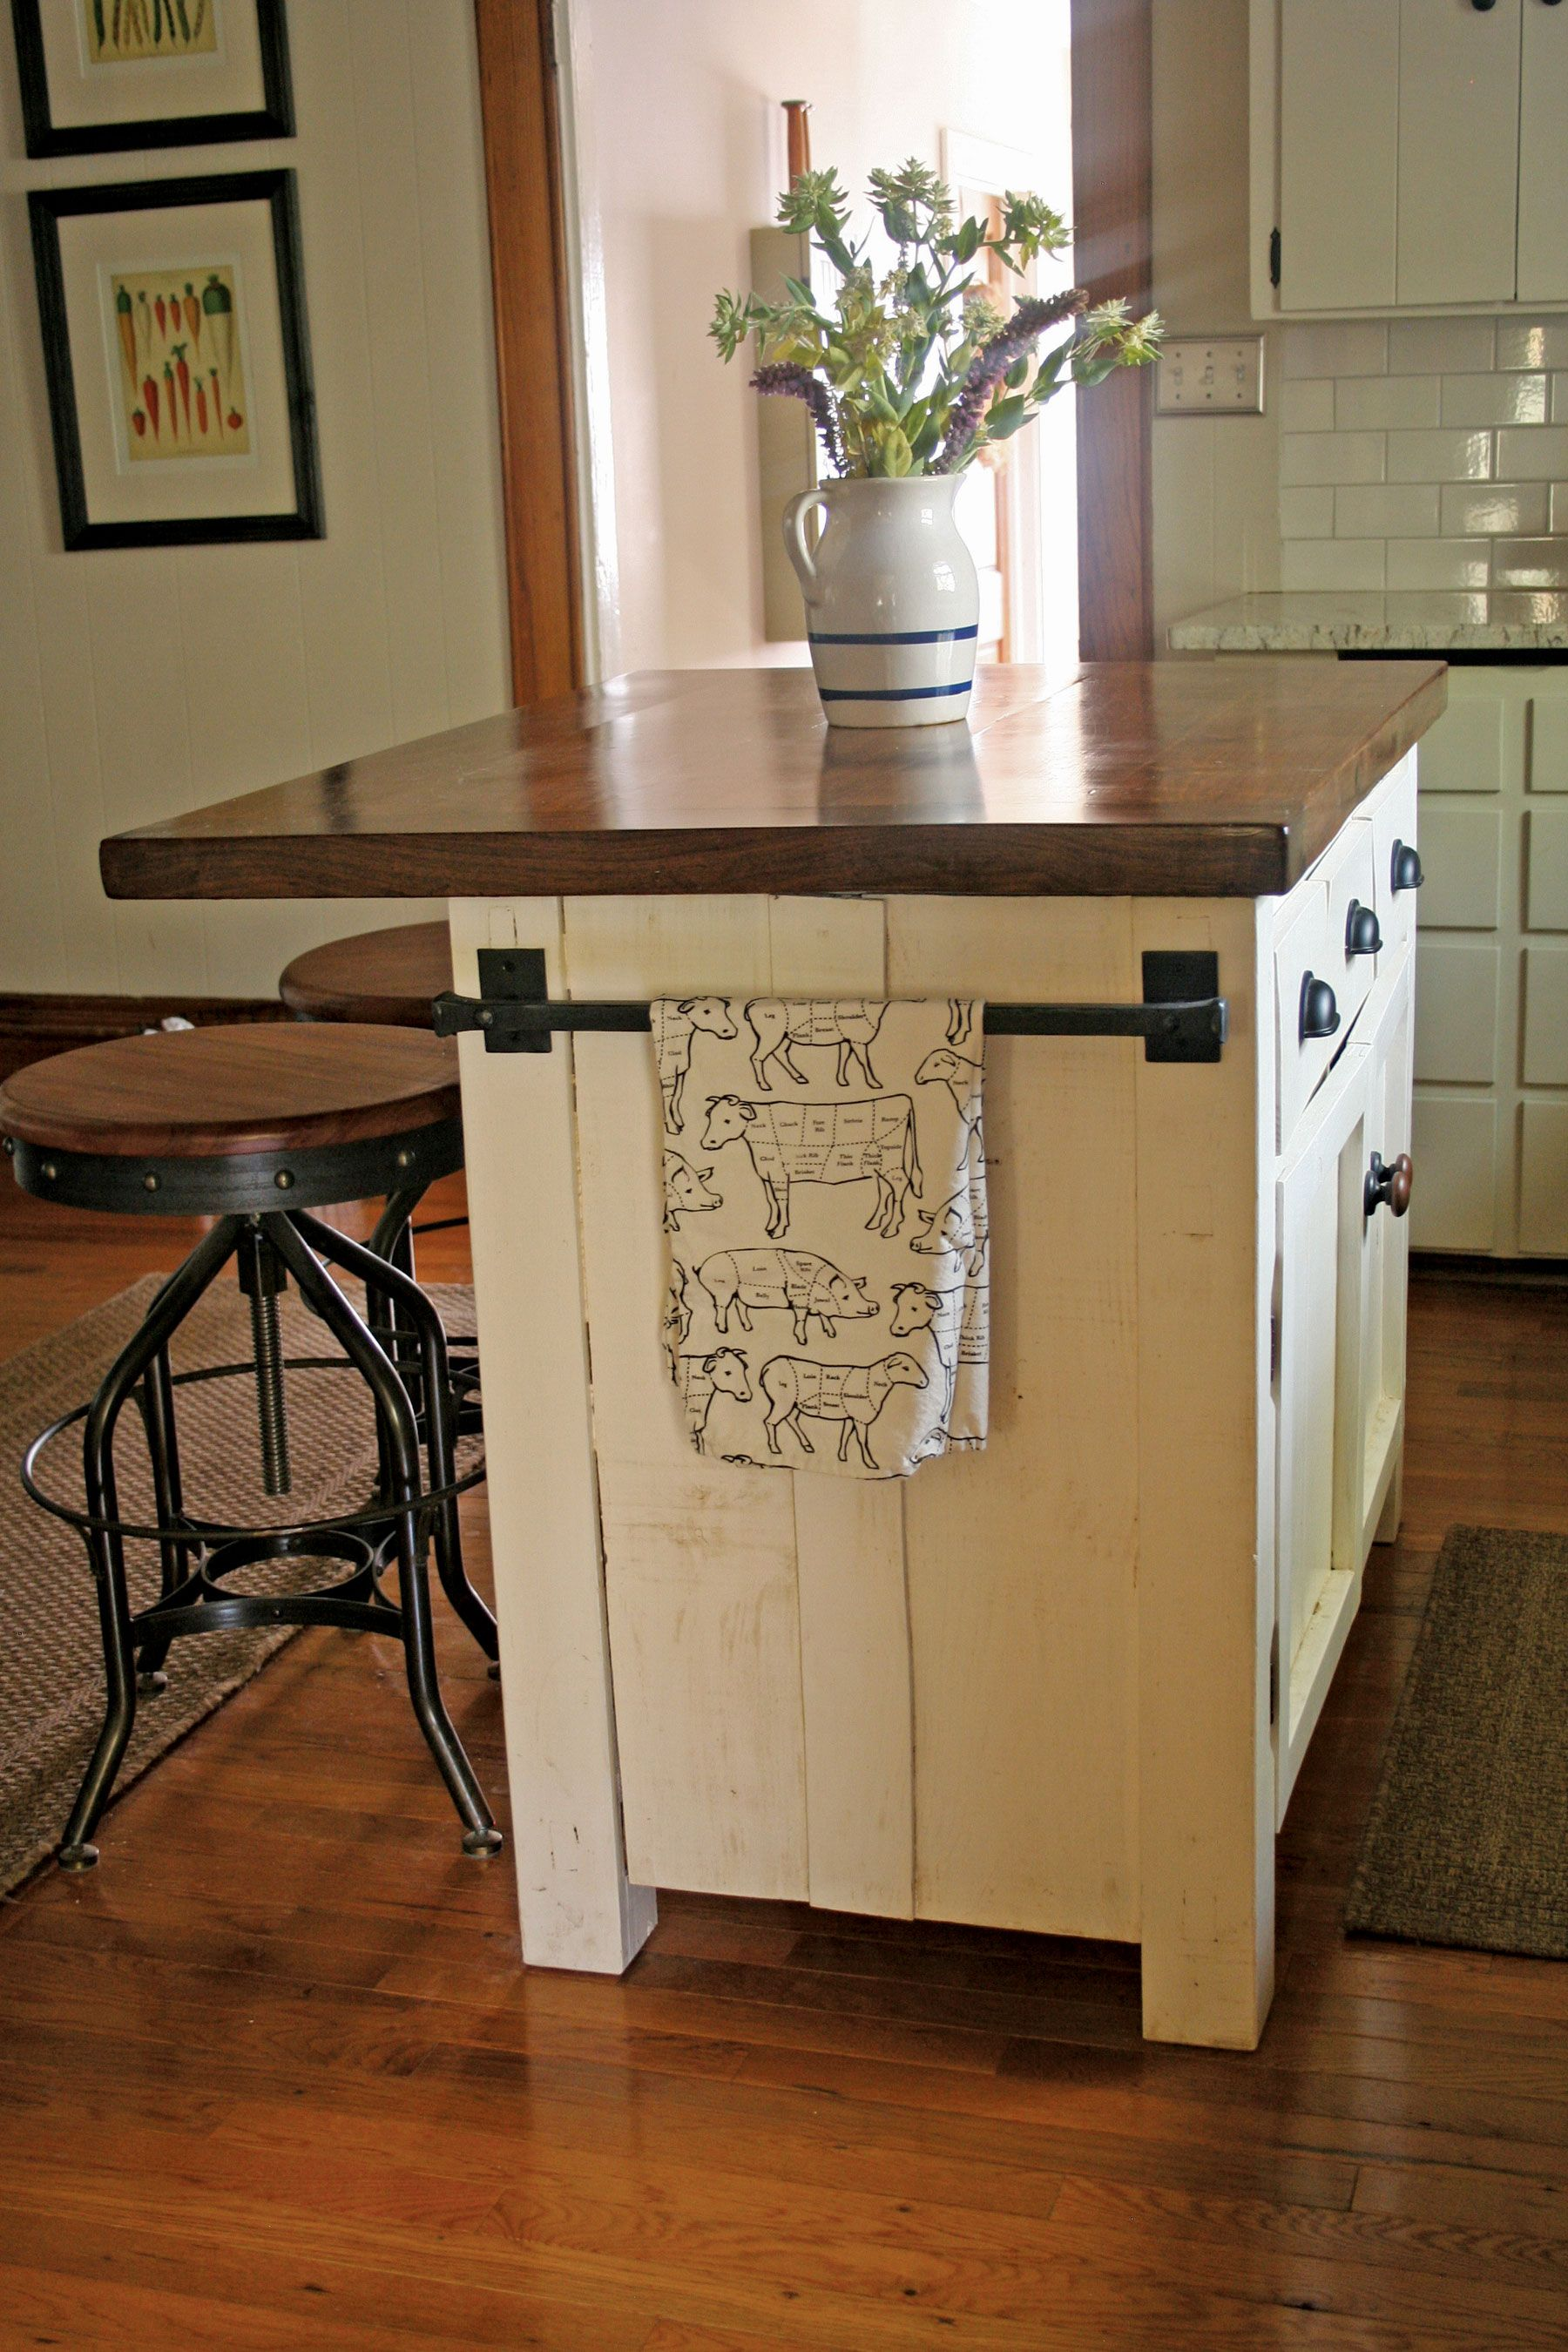 Kitchen Island Idea 15 Little Clever Ideas To Improve Your Kitchen 5 Crafting On